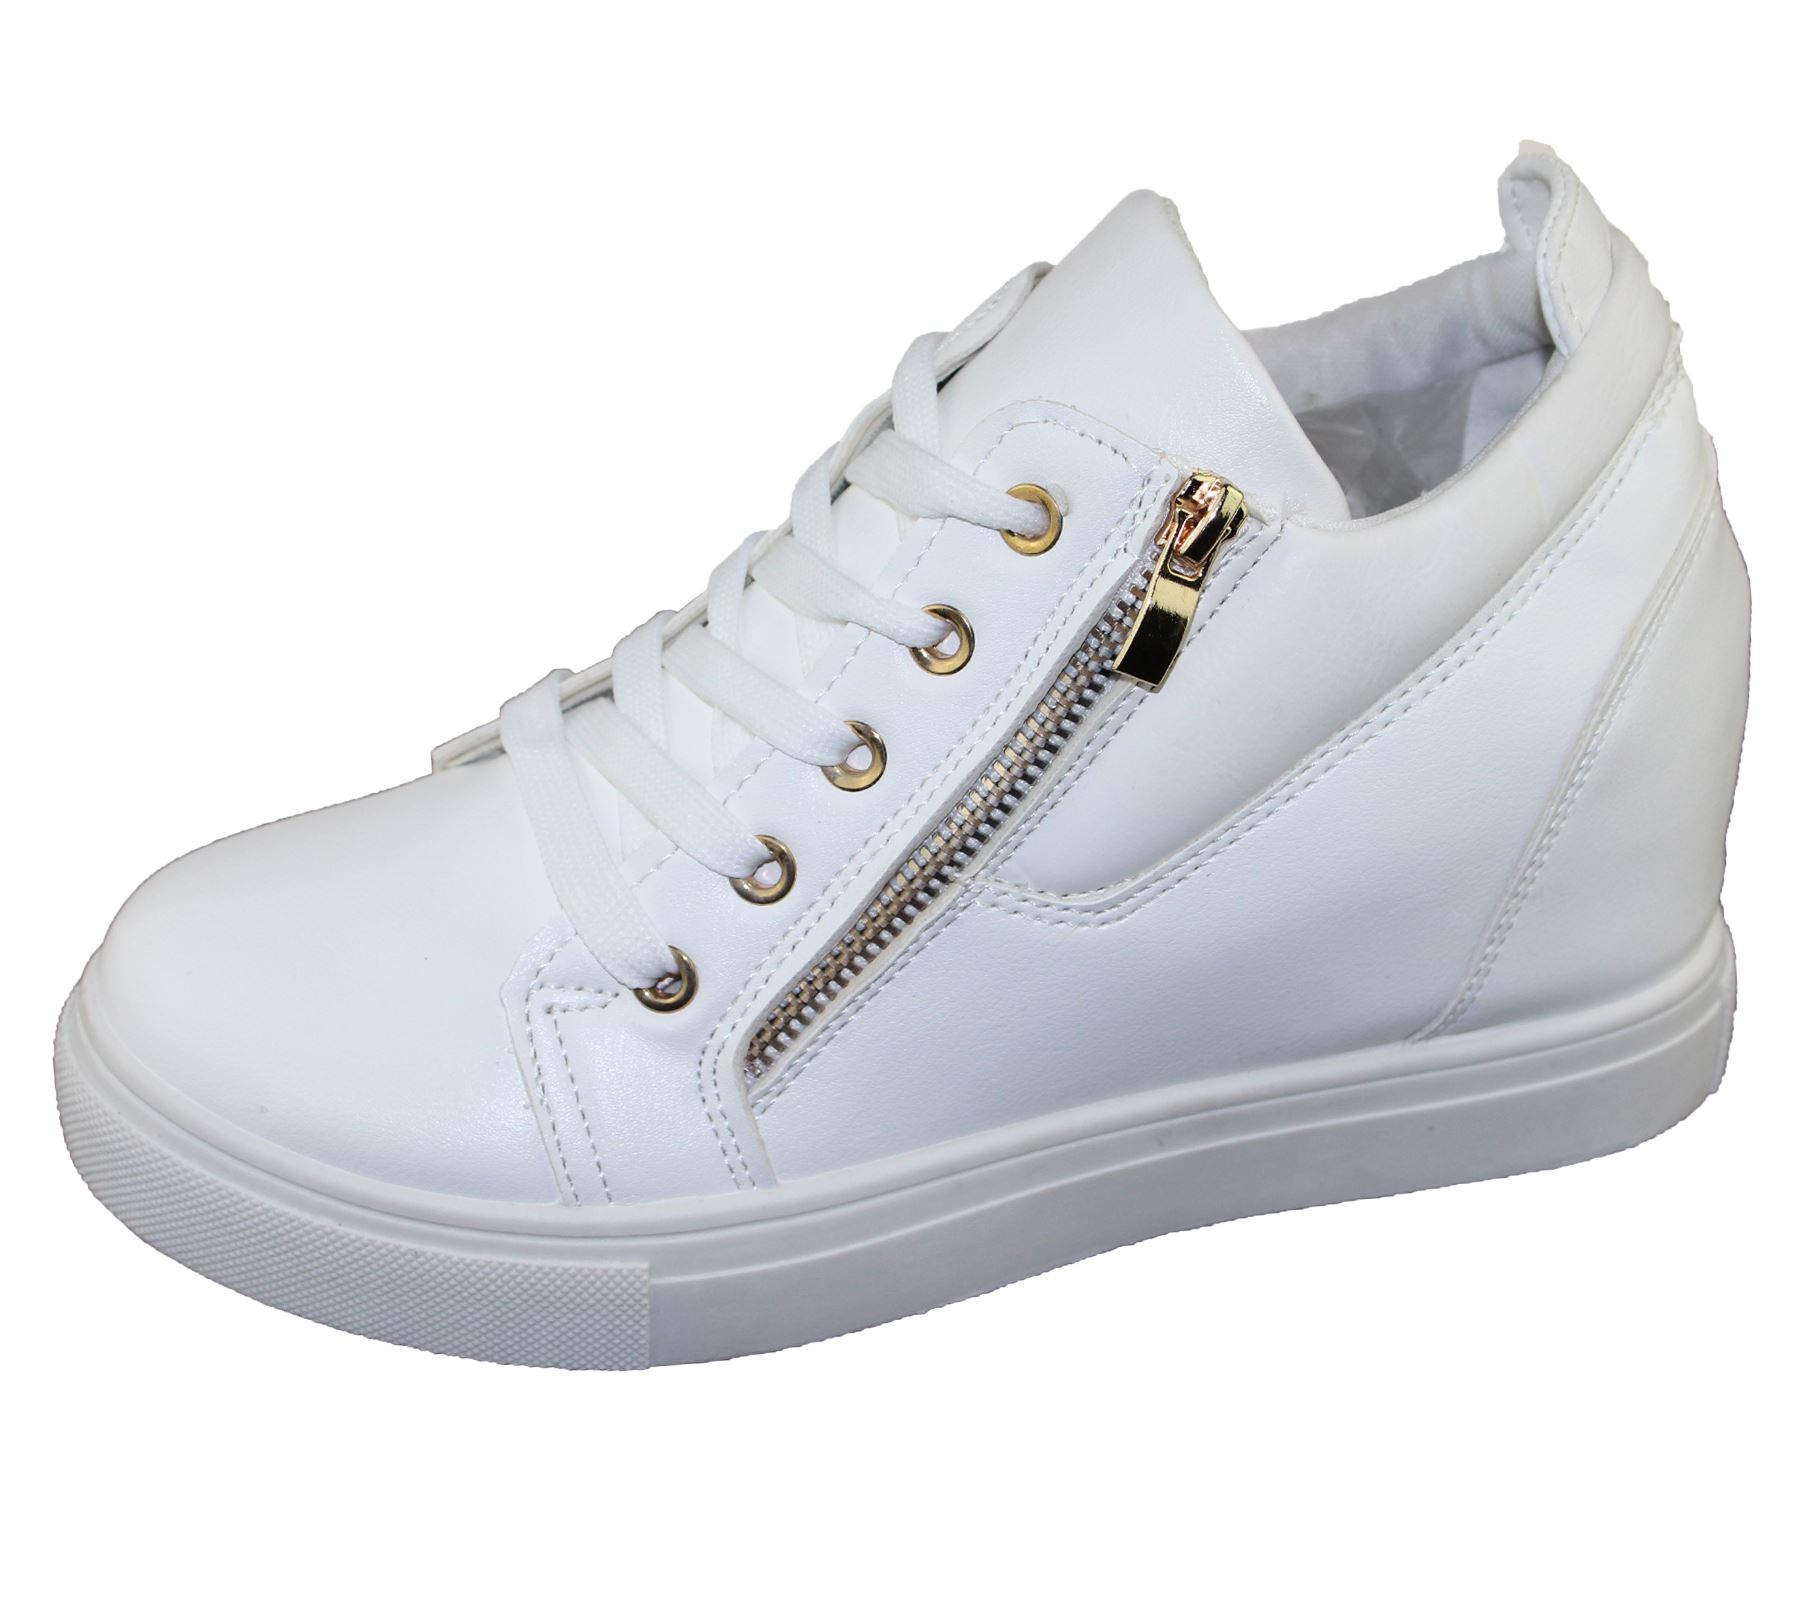 Ladies Patdnt Leathrr Lace Up Shoes